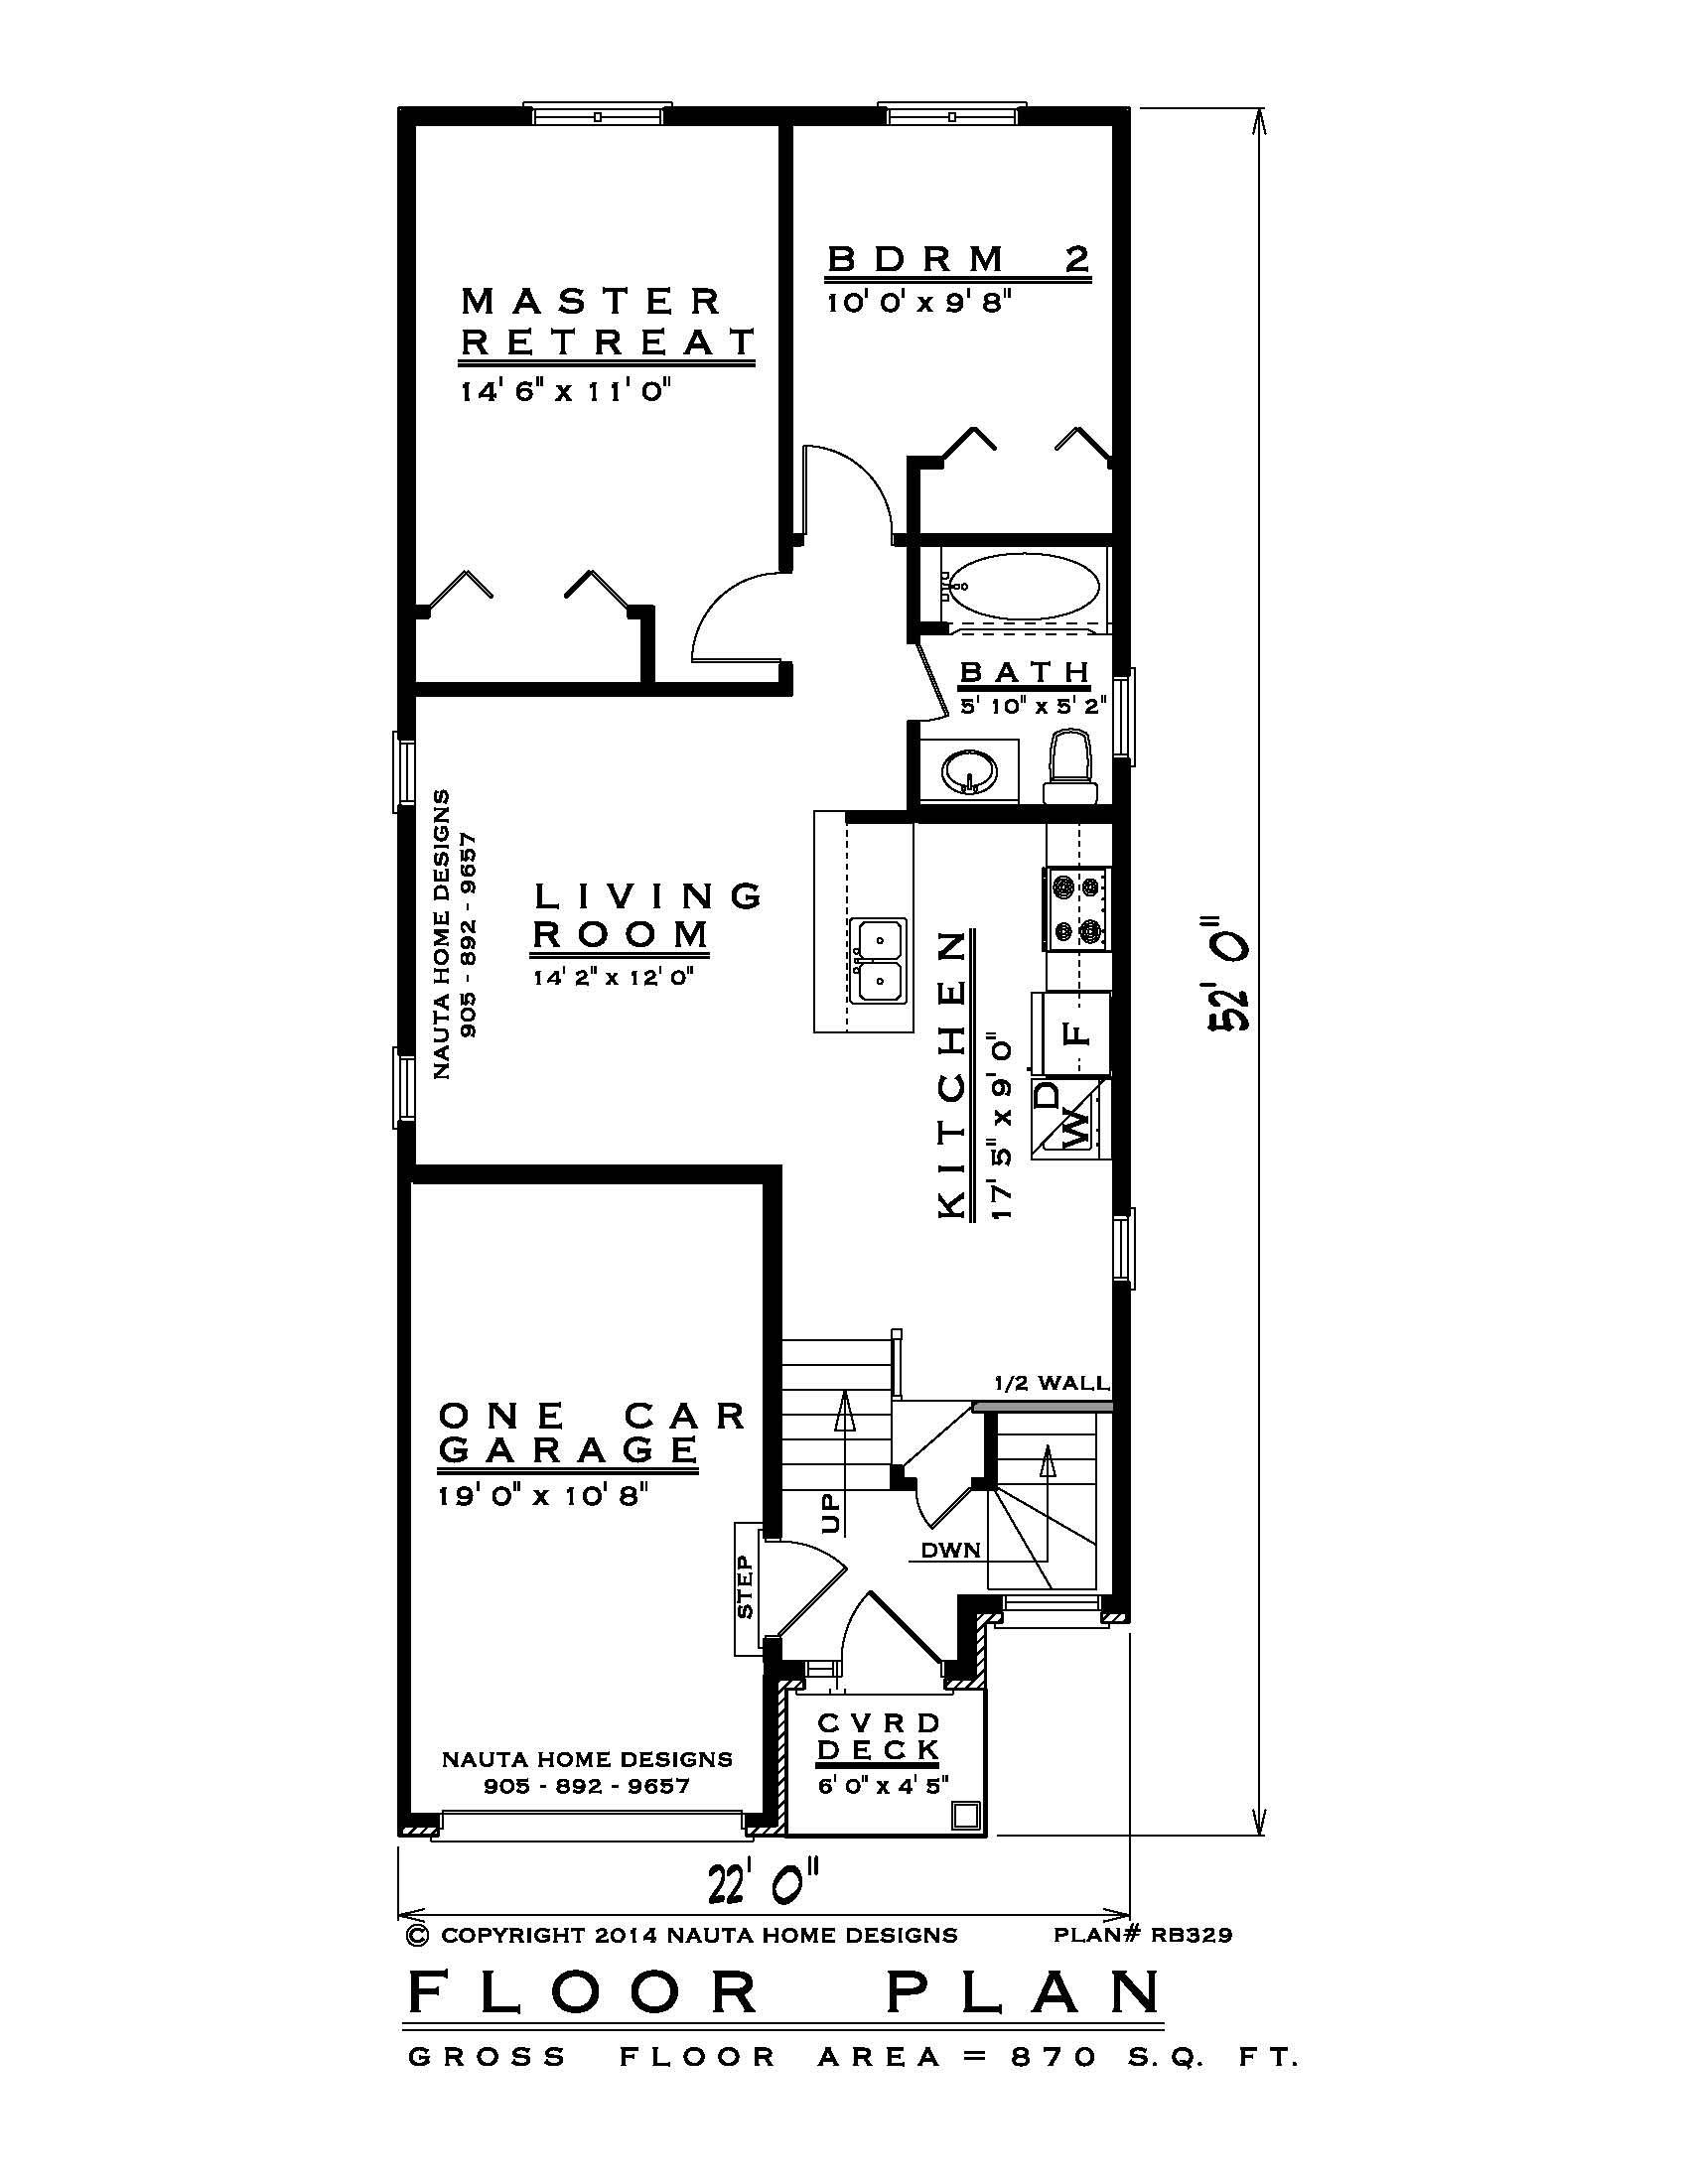 House Plans In Canada 2020 Modern House Floor Plans House Floor Plans Modern House